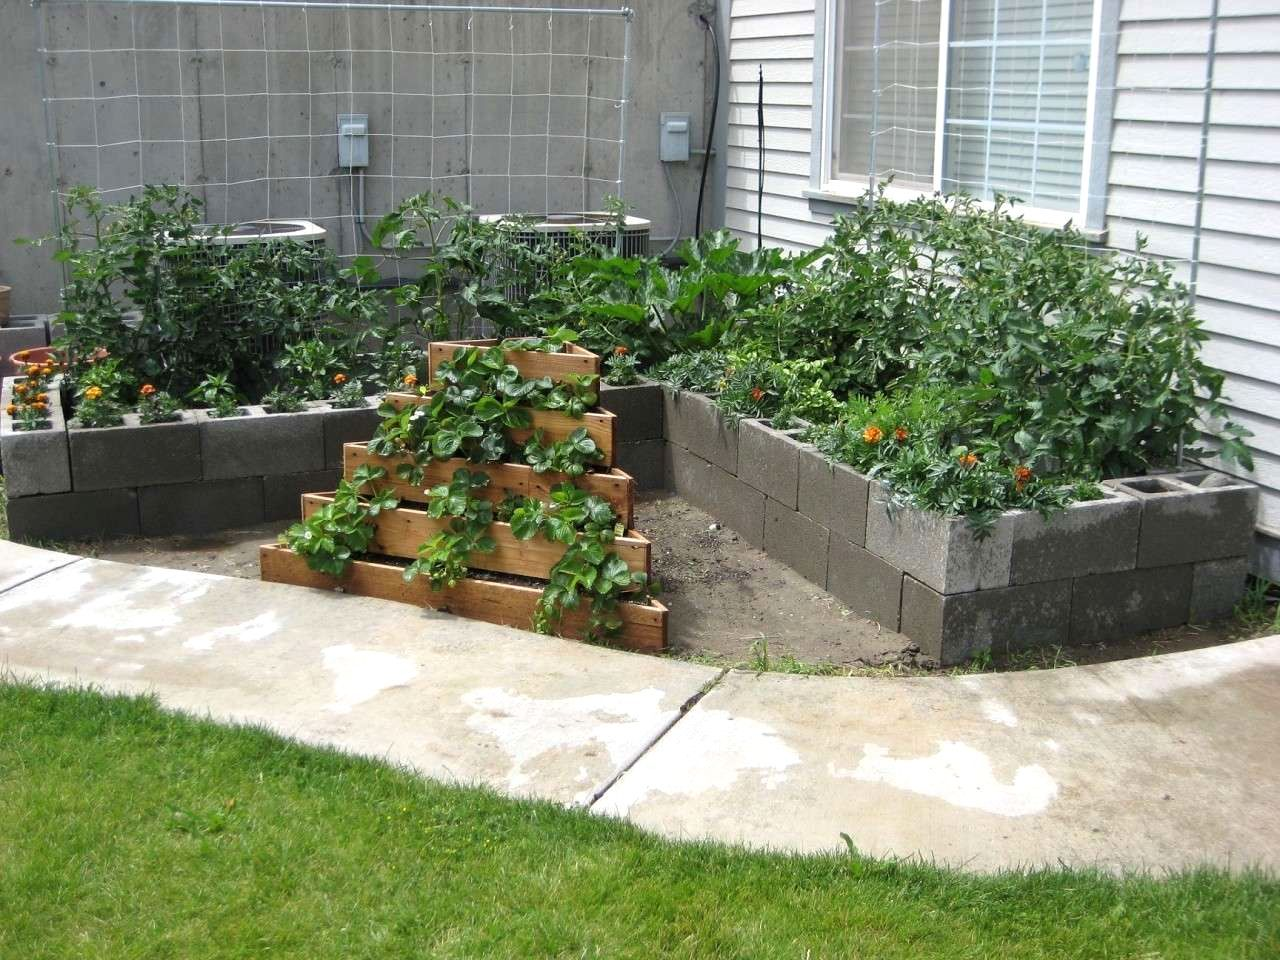 Raised vegetable gardens - Raised Vegetable Garden Using Cinder Blocks Architecture Nice Cinder Block Planters Ideas Best Cinder Block